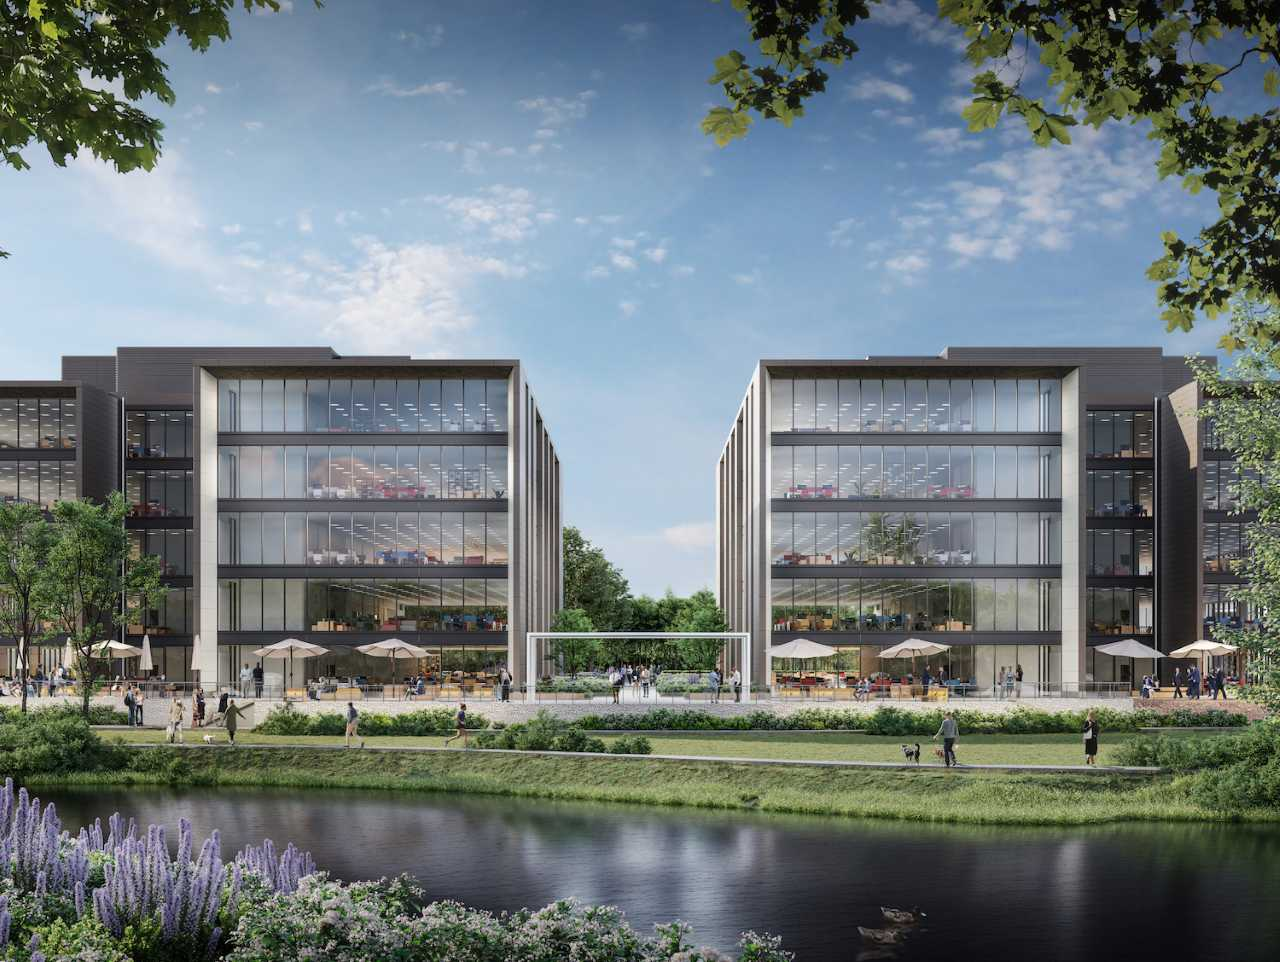 CONSTRUCTION OF NEW PHASE AT GREEN PARK BEGINS AS UK'S LEADING BUSINESS PARK CELEBRATES ITS 20TH BIRTHDAY YEAR